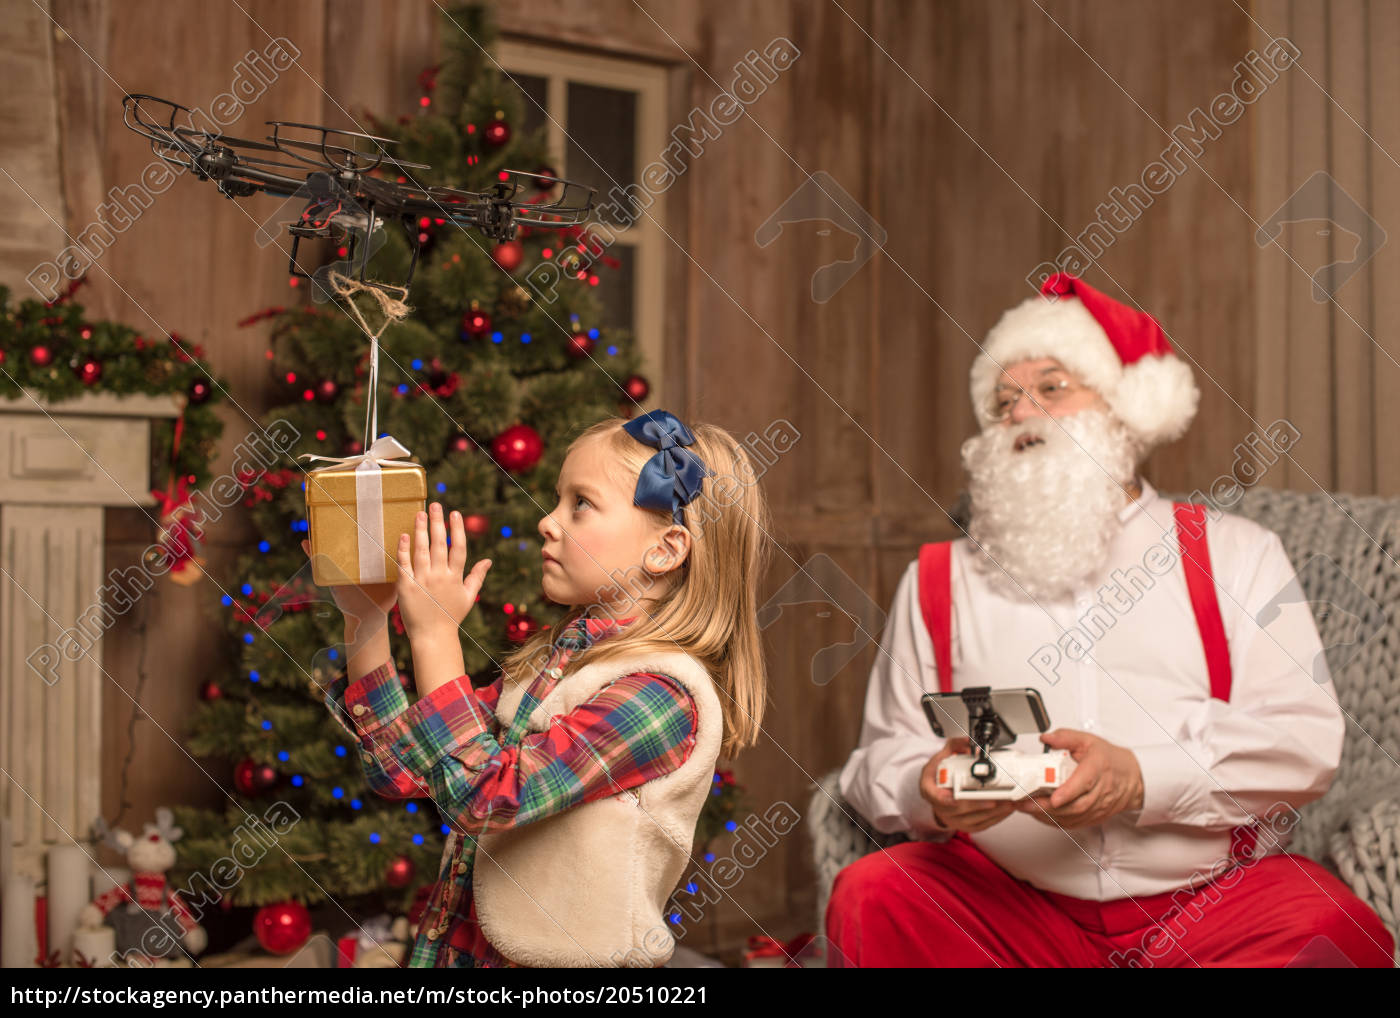 santa, with, kid, using, hexacopter, drone - 20510221